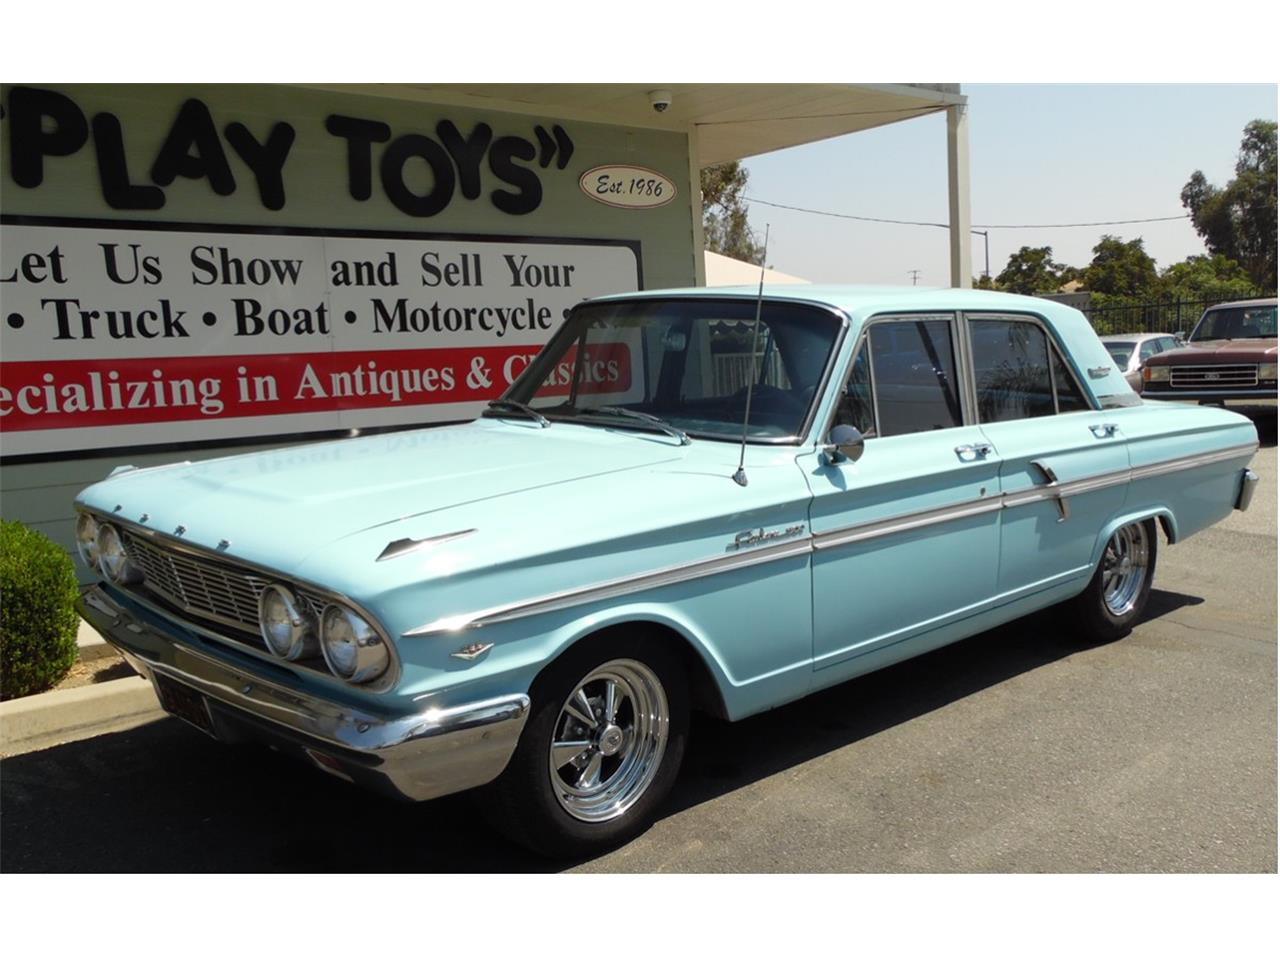 Large picture of 64 fairlane 500 lvaz